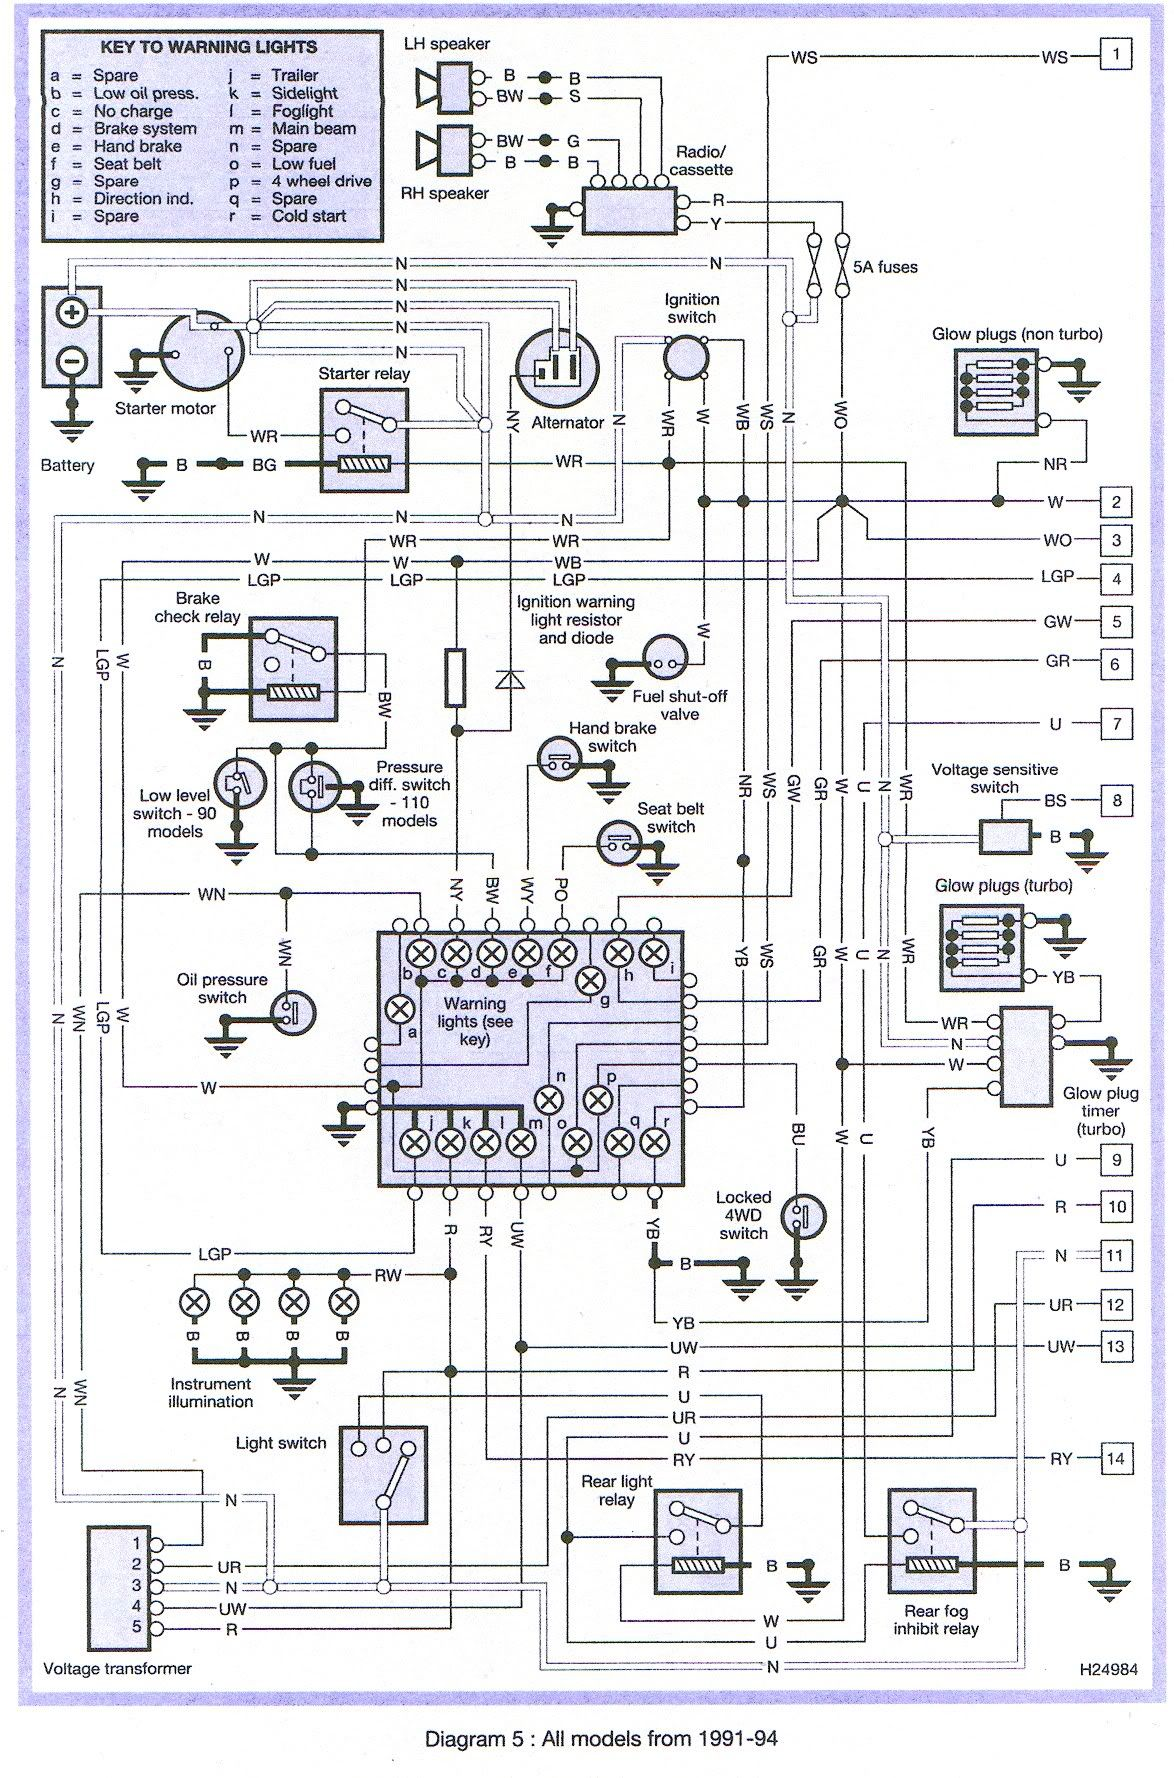 land rover discovery wiring diagram manual repair with engine land rover discovery 2003 engine diagram [ 1174 x 1778 Pixel ]